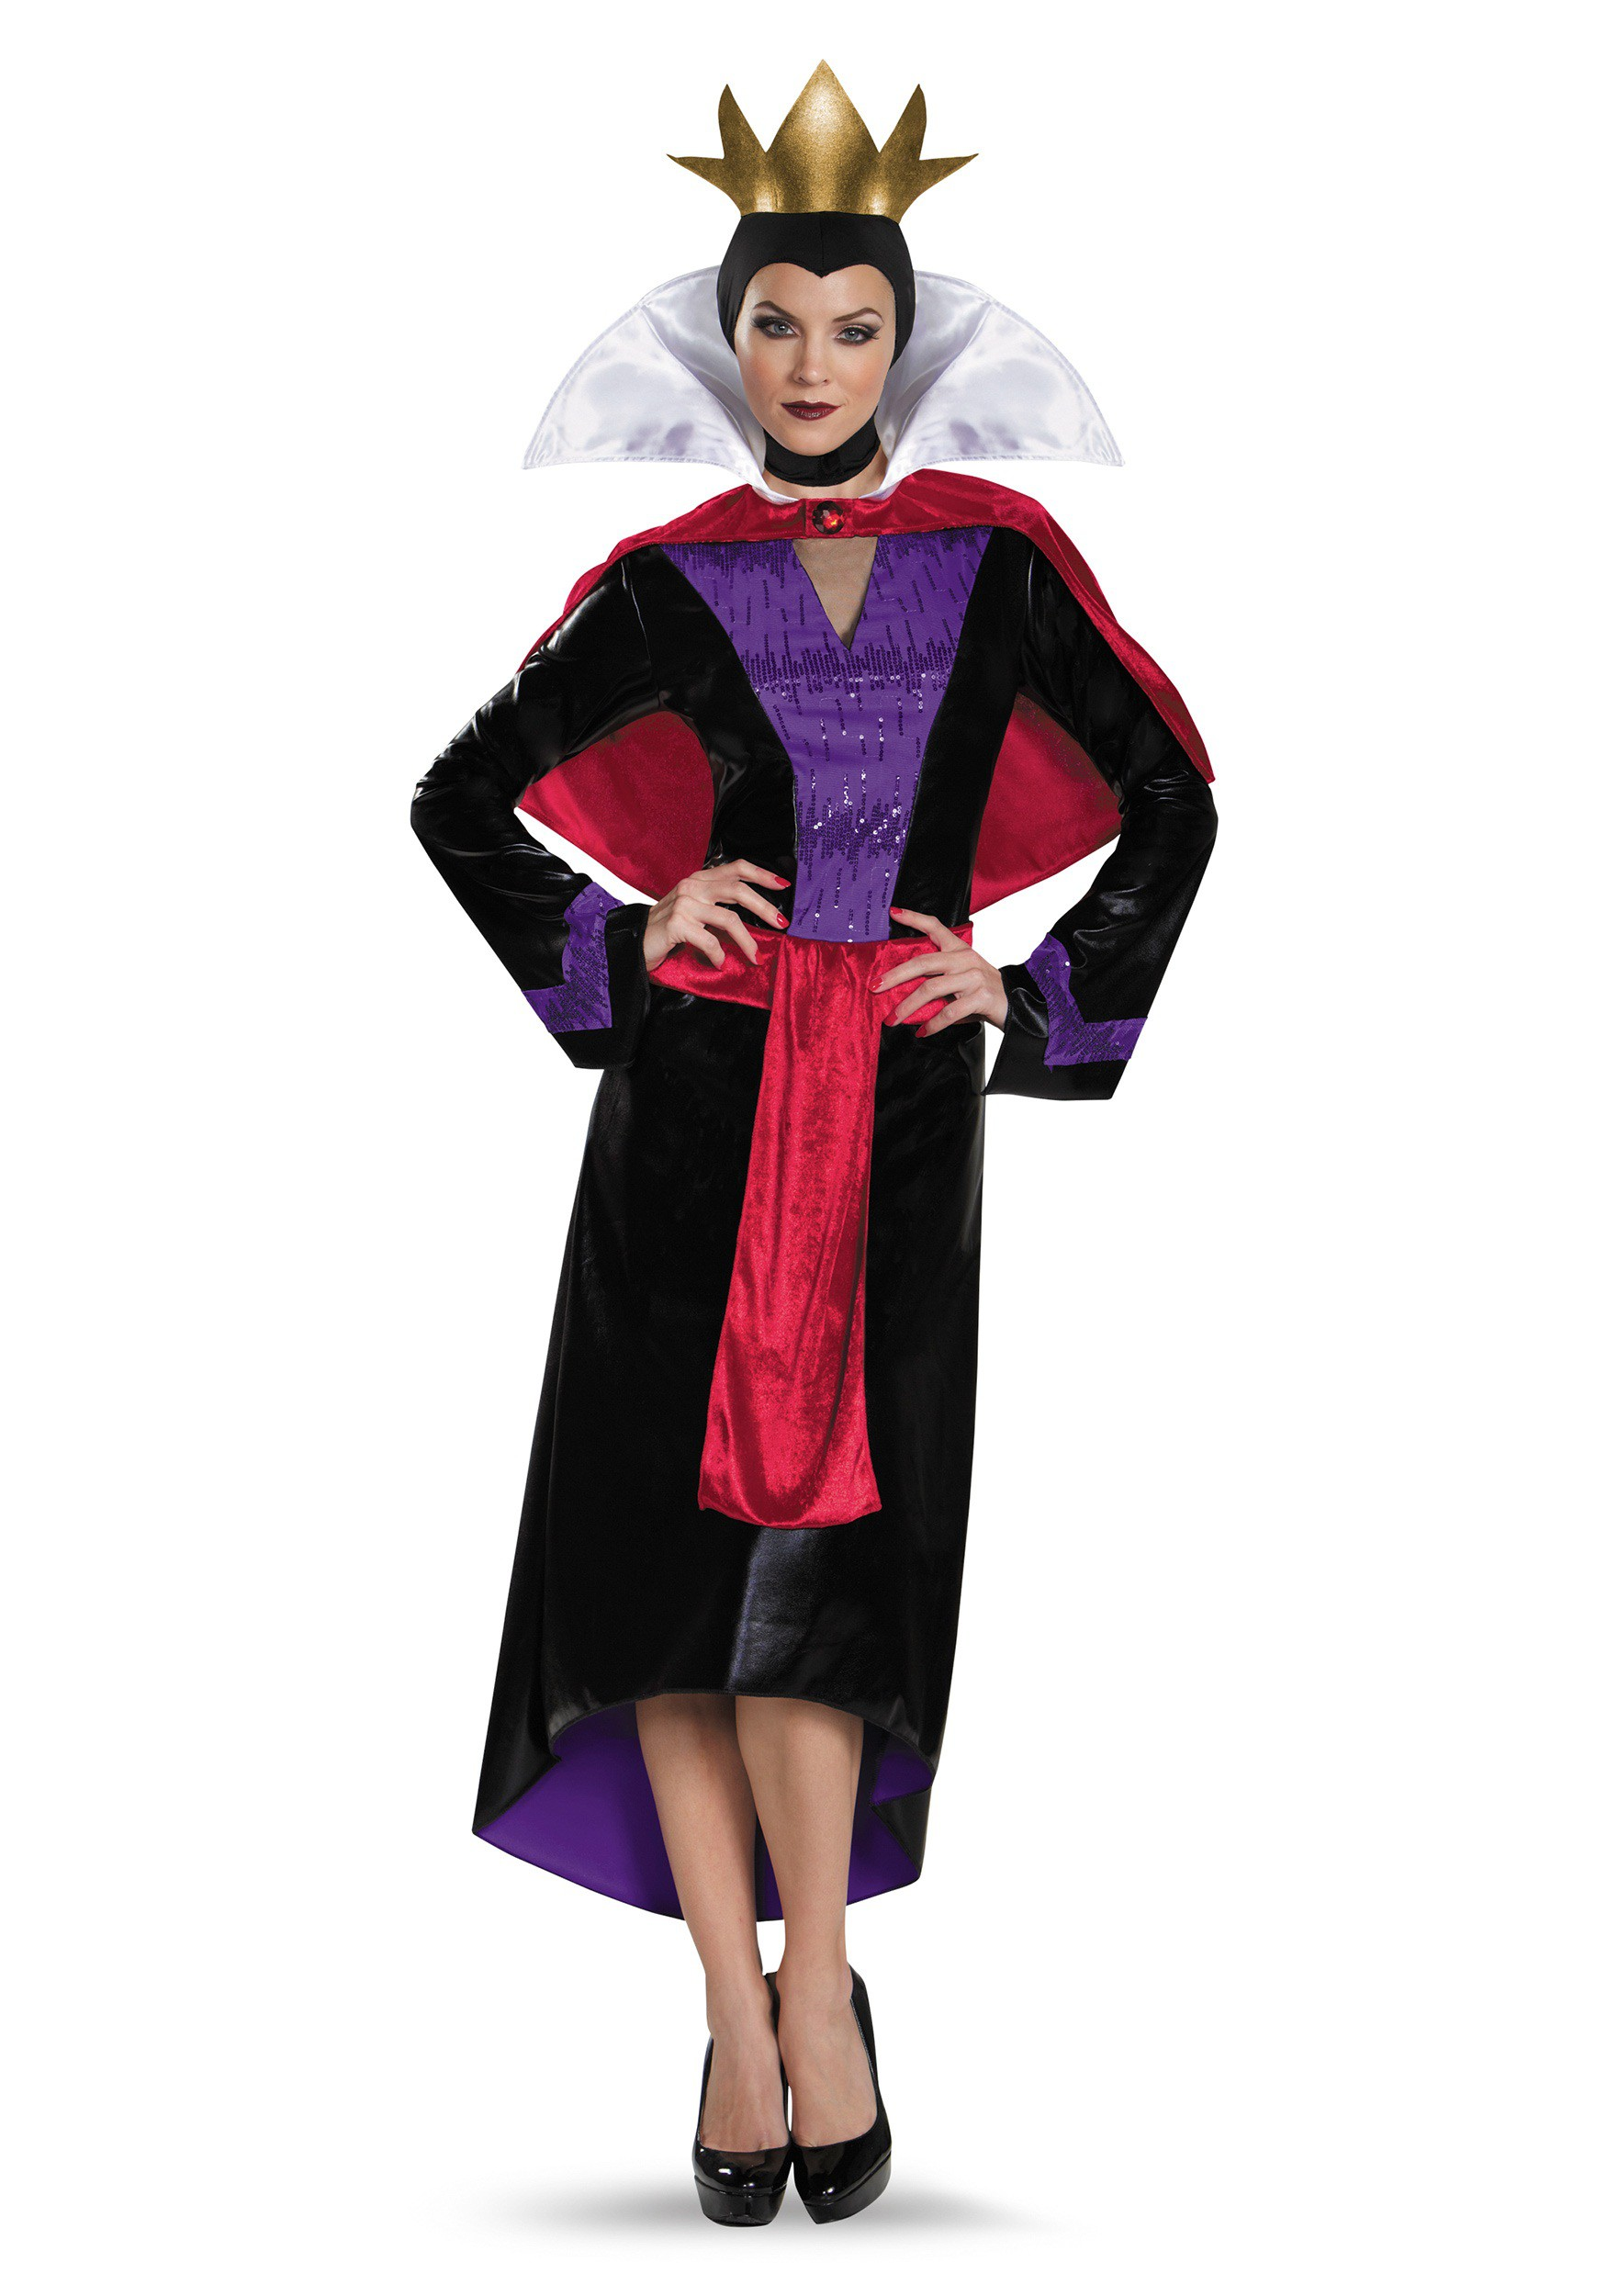 Womens Deluxe Evil Queen Costume  sc 1 st  Halloween Costumes & Disney Villains Costumes - Adults Kids Disney Character Costumes